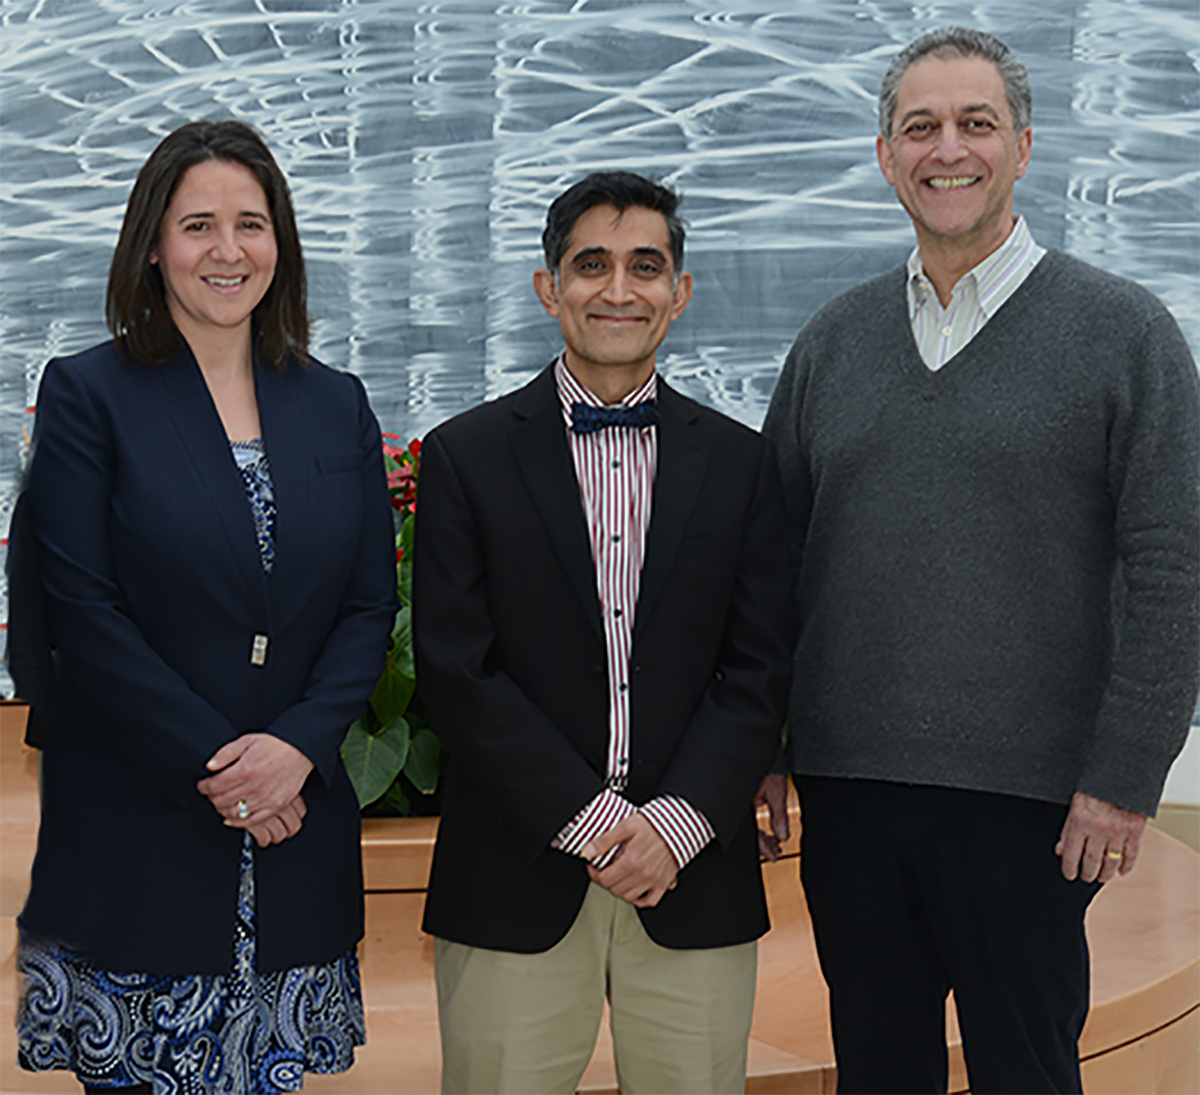 Dr. Nitin Sethi, center, was named Director of the Weill Cornell Medicine Concussion and Brain Injury Clinic